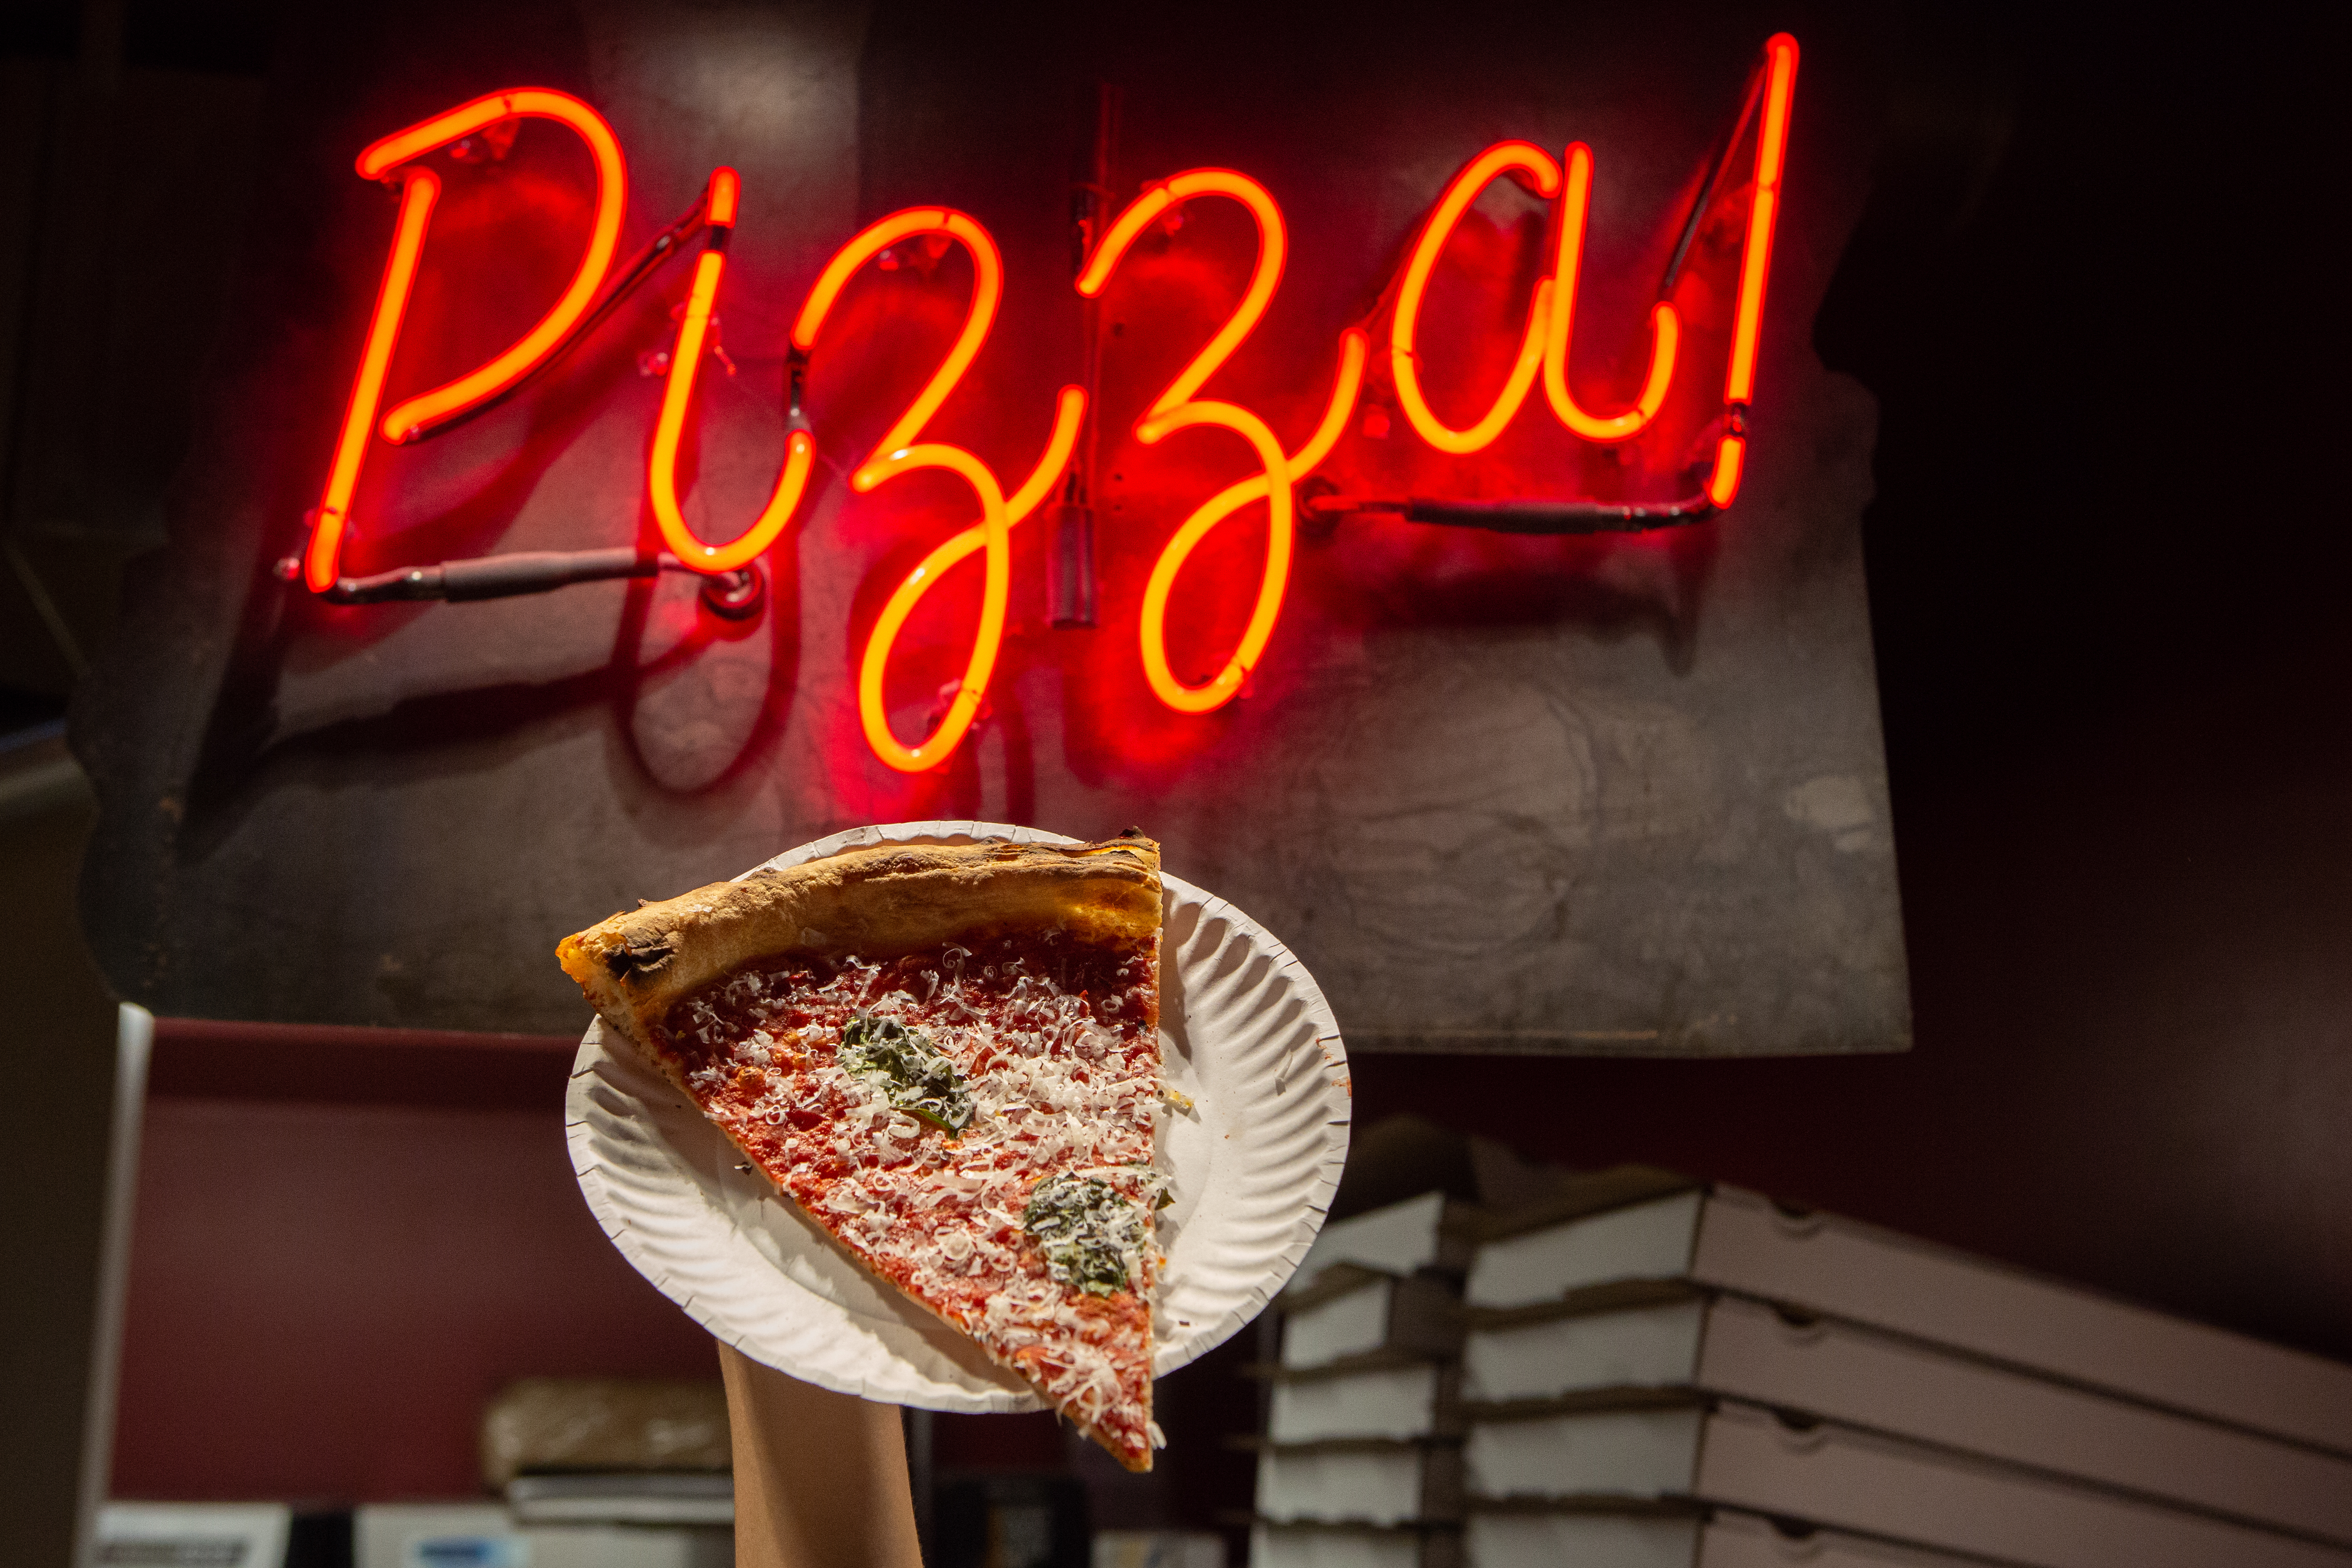 """A hand holds up a slice of marinara pizza on a paper plate in front of Checkerboard's neon """"Pizza!"""" sign"""